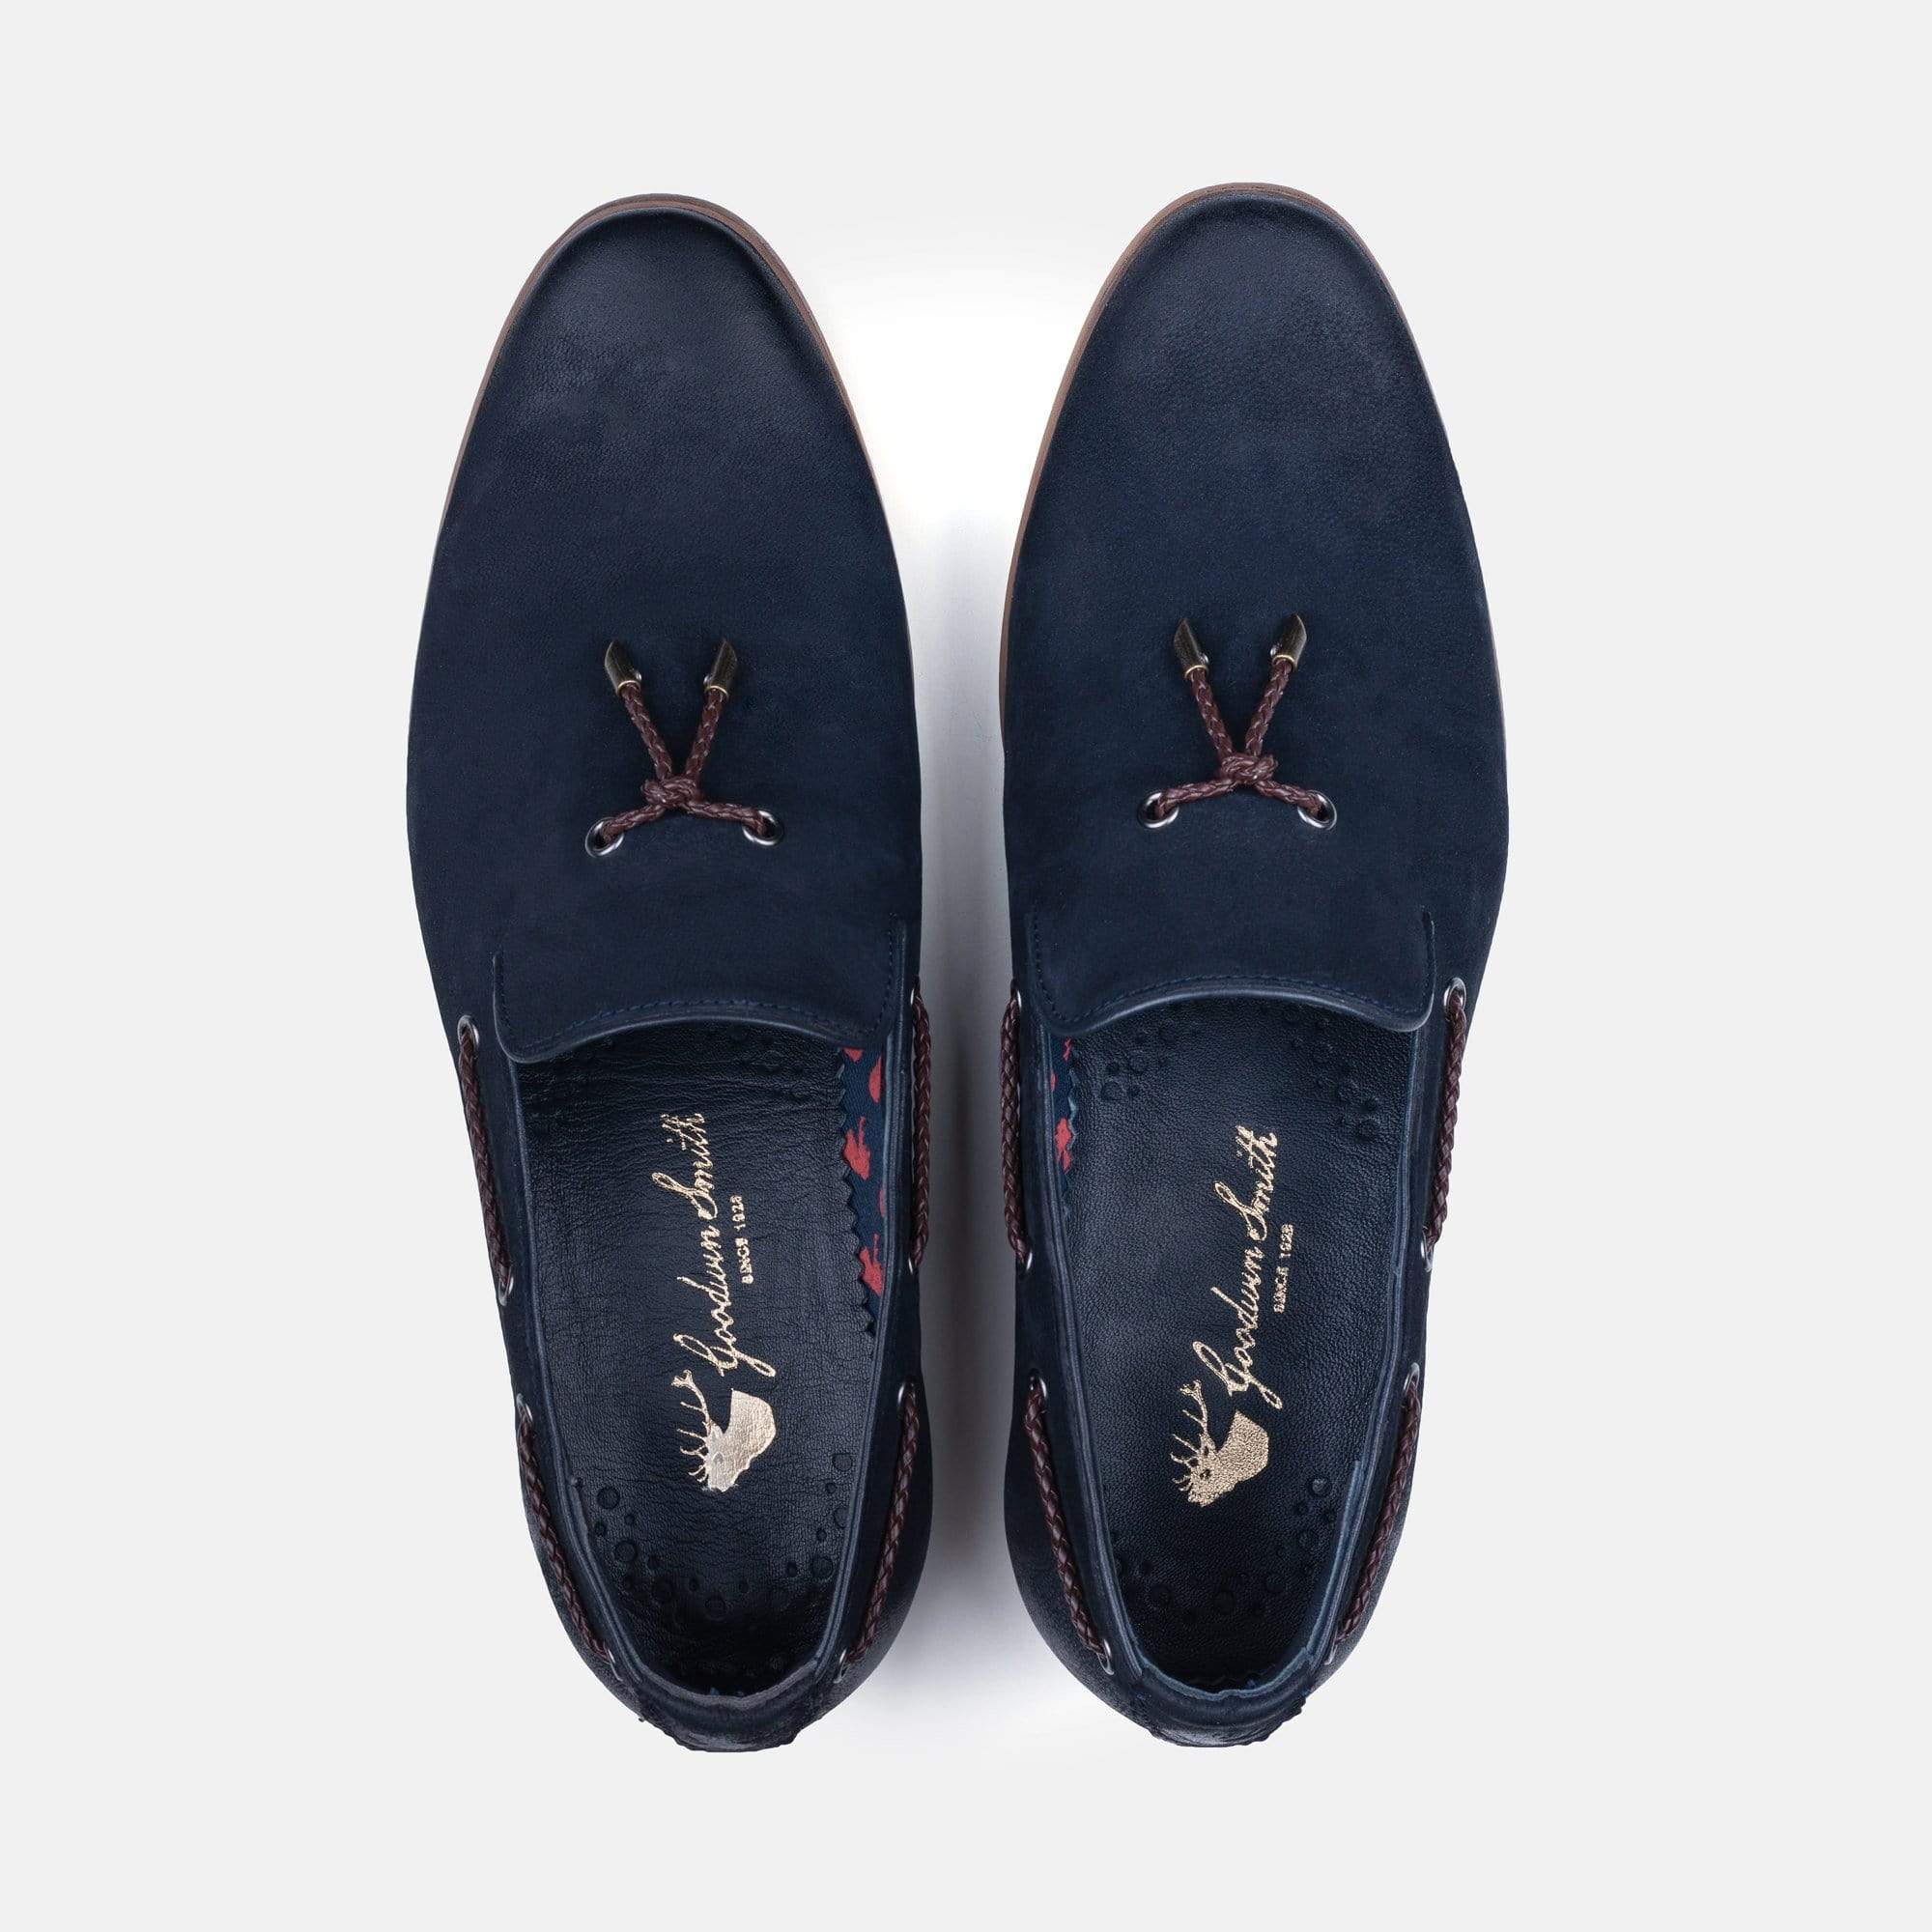 Mens navy nubuck shoes with leather collar lining and sock, textile lining featuring stag logo